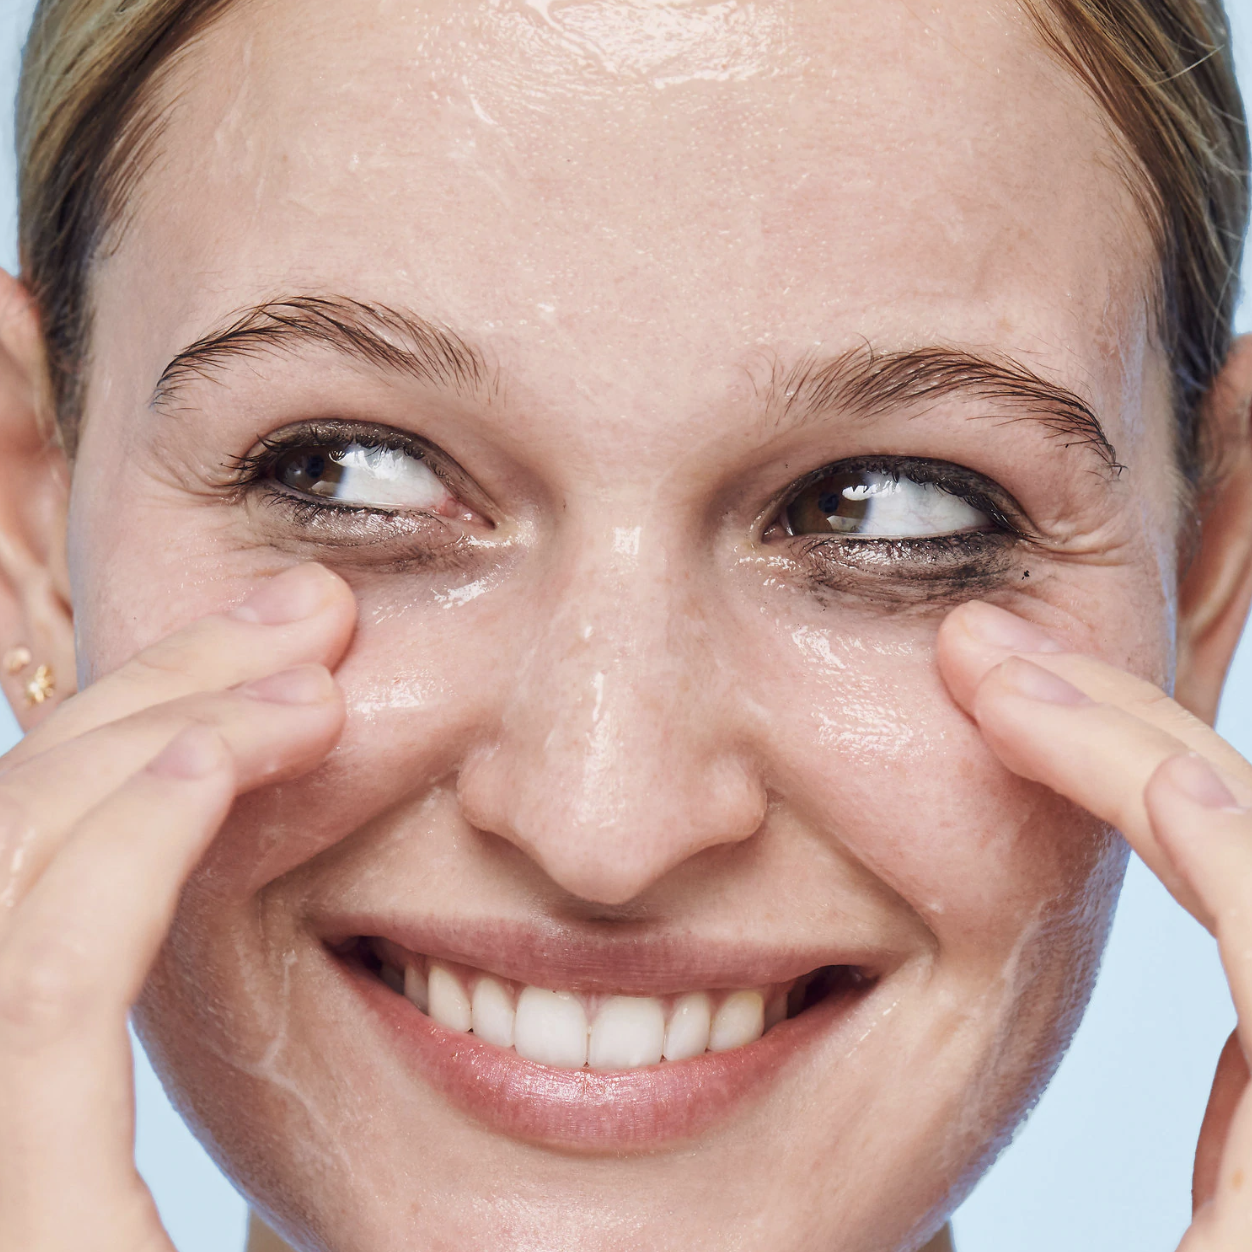 A person with the clear wash spread across their nose, forehead, and cheeks. The product is helping to remove the eyeliner from around the person's eye area